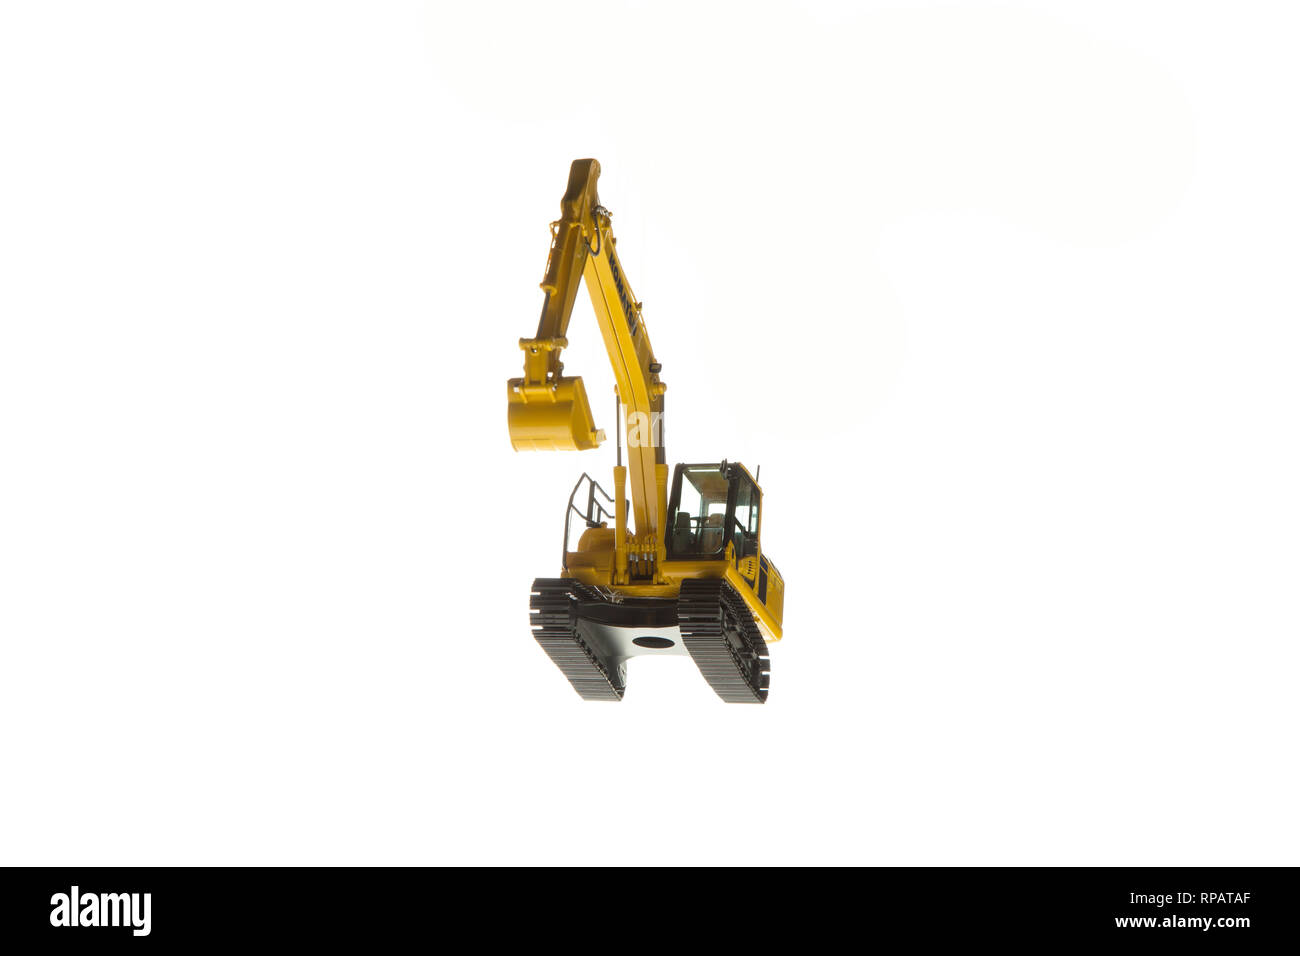 Excavator construction machinery front angle bottom view - Stock Image